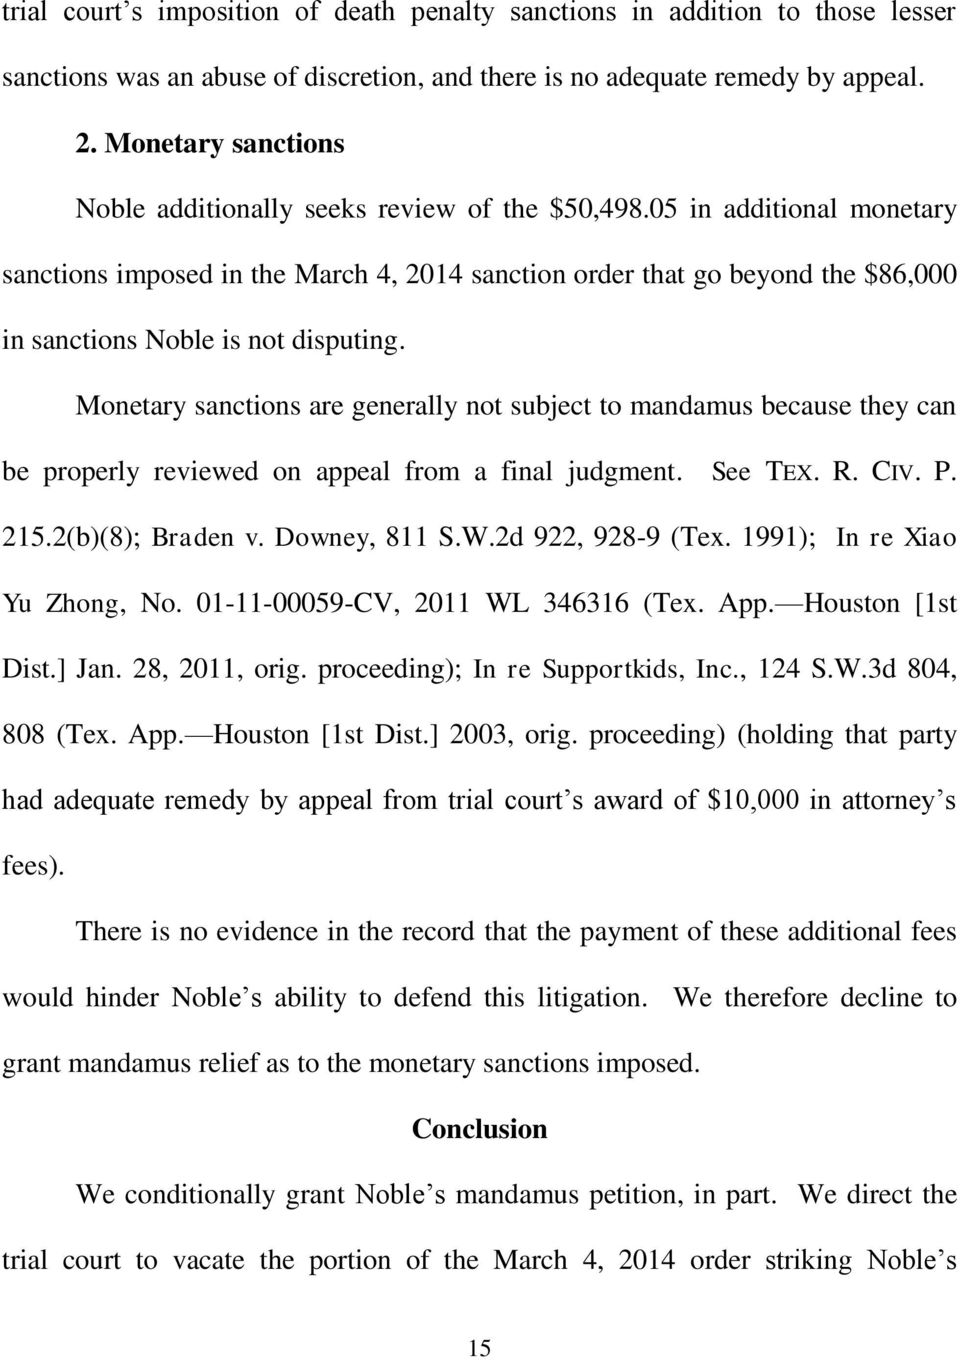 05 in additional monetary sanctions imposed in the March 4, 2014 sanction order that go beyond the $86,000 in sanctions Noble is not disputing.